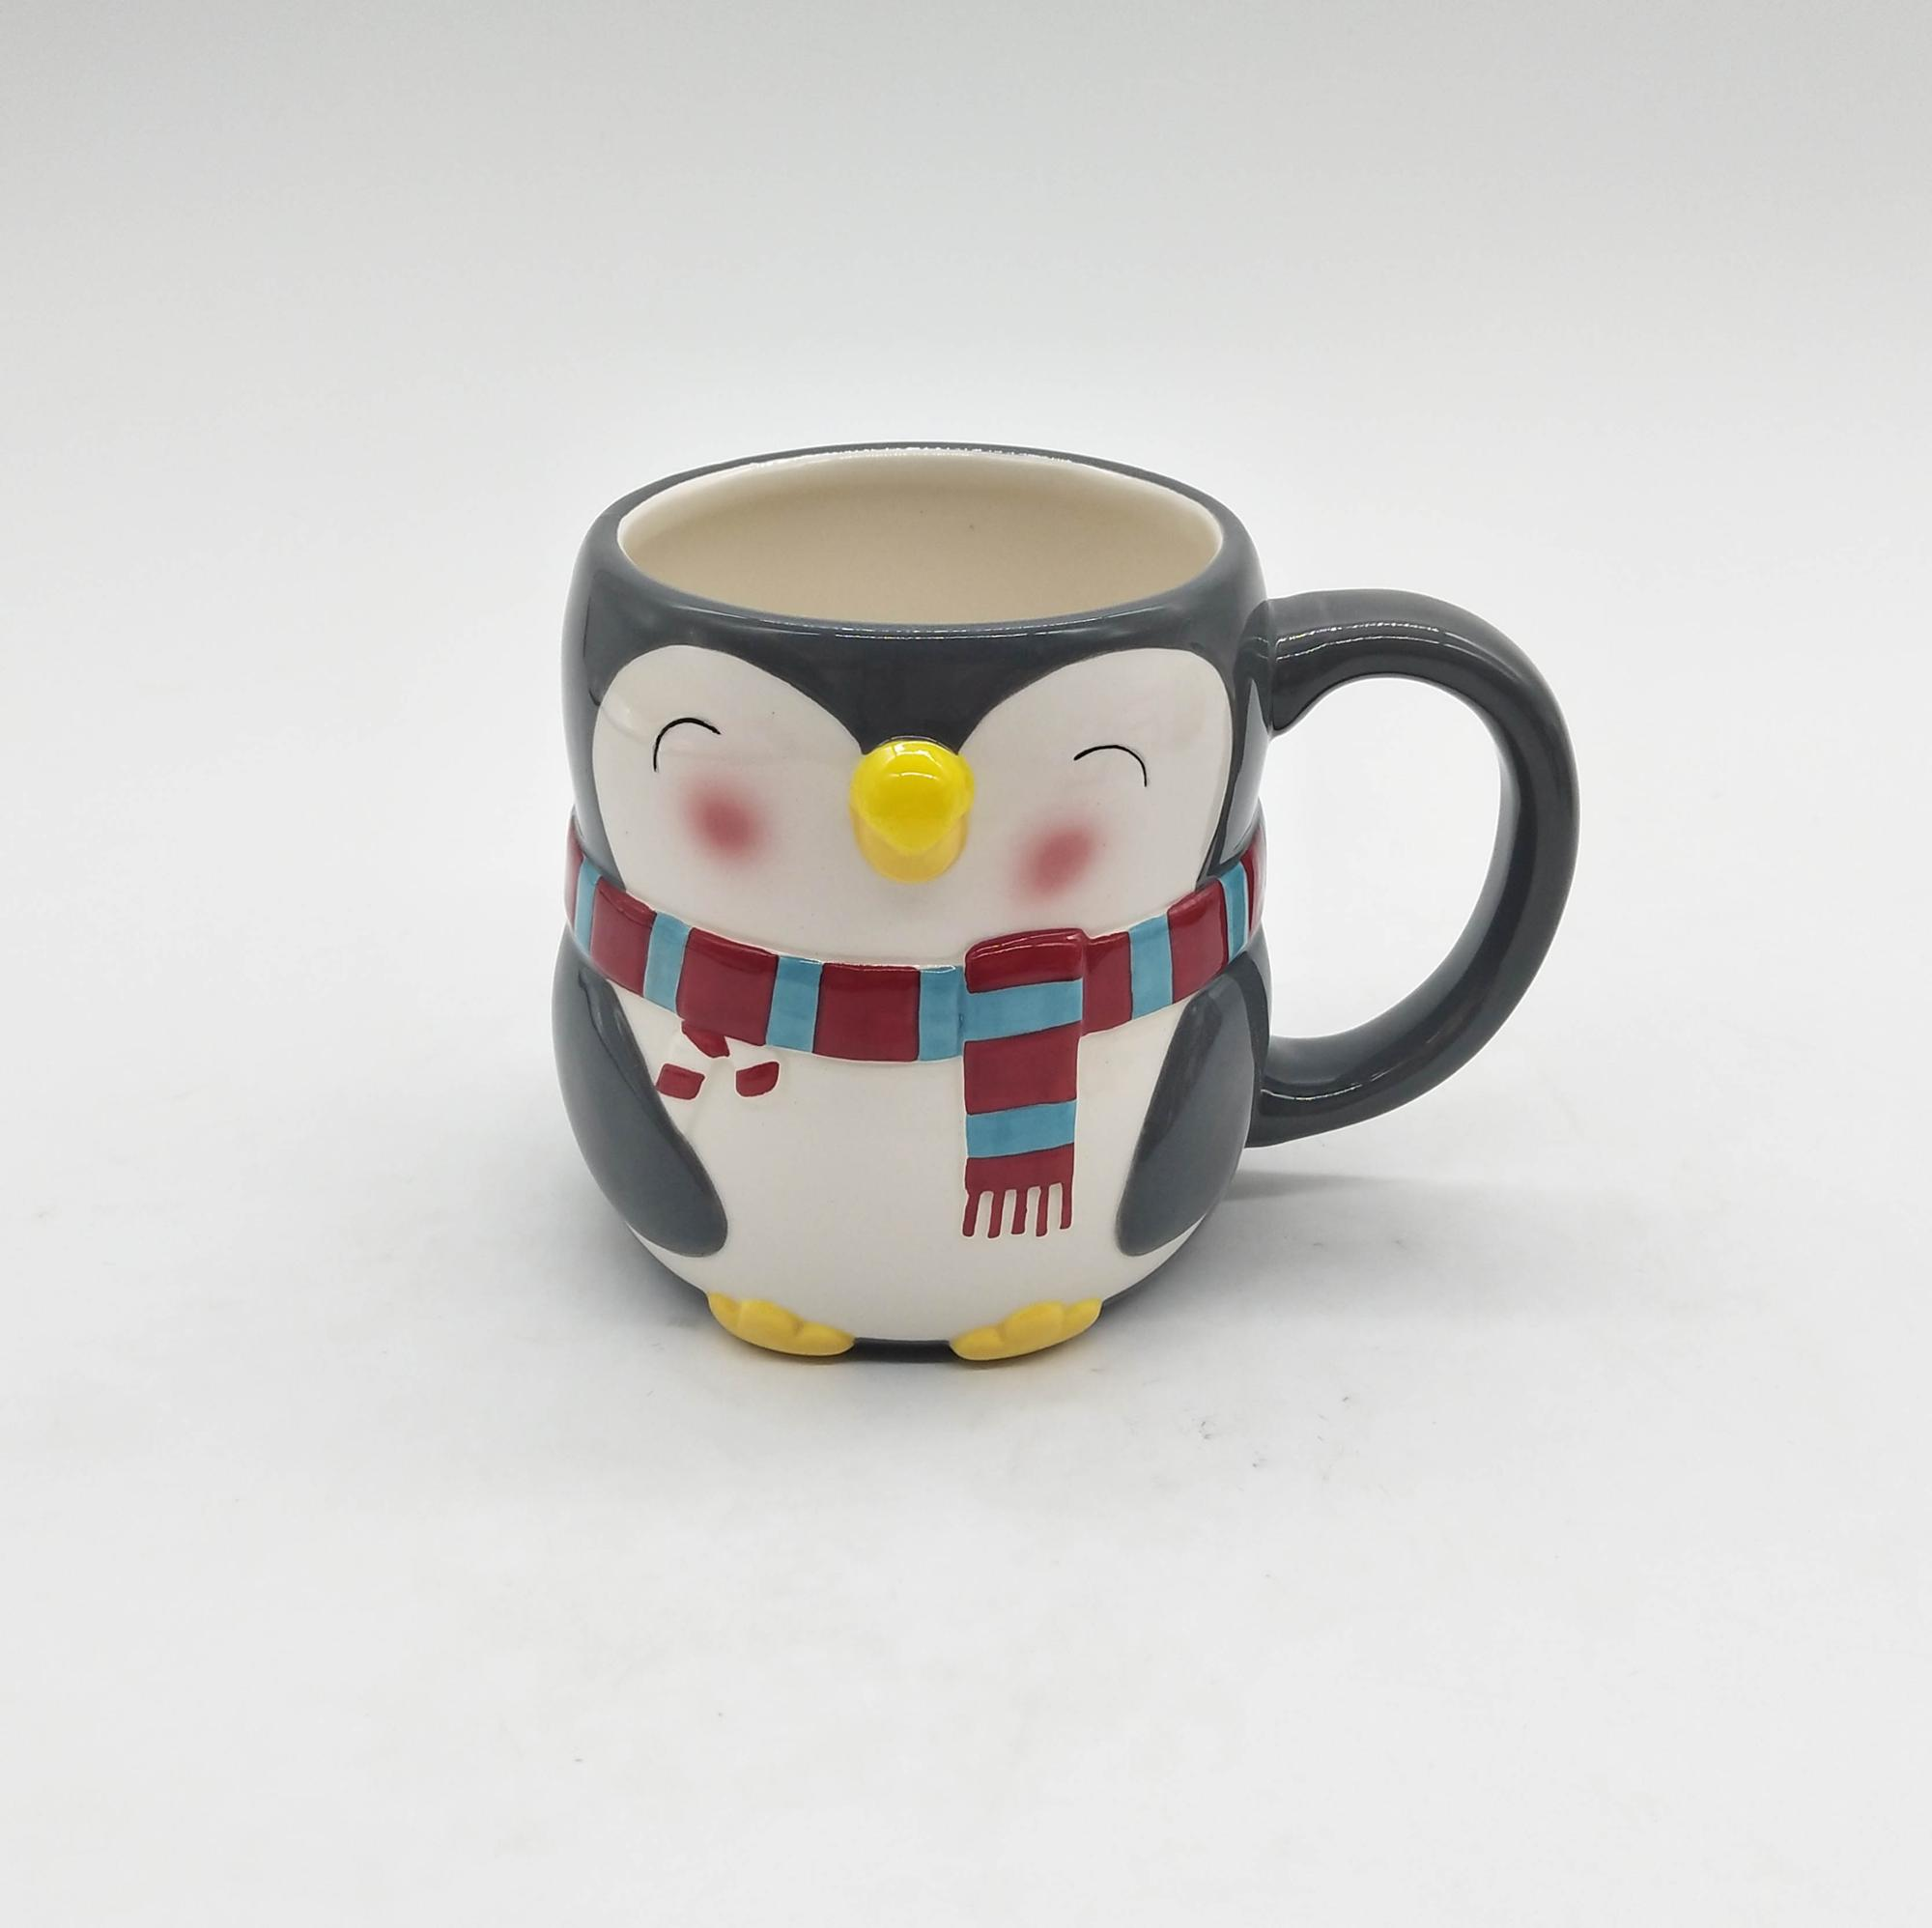 Made Coffee Painted cheap Penguin Mugs Hand Christmas Design Buy For Custom Mugs Ceramic OPXiTkZu